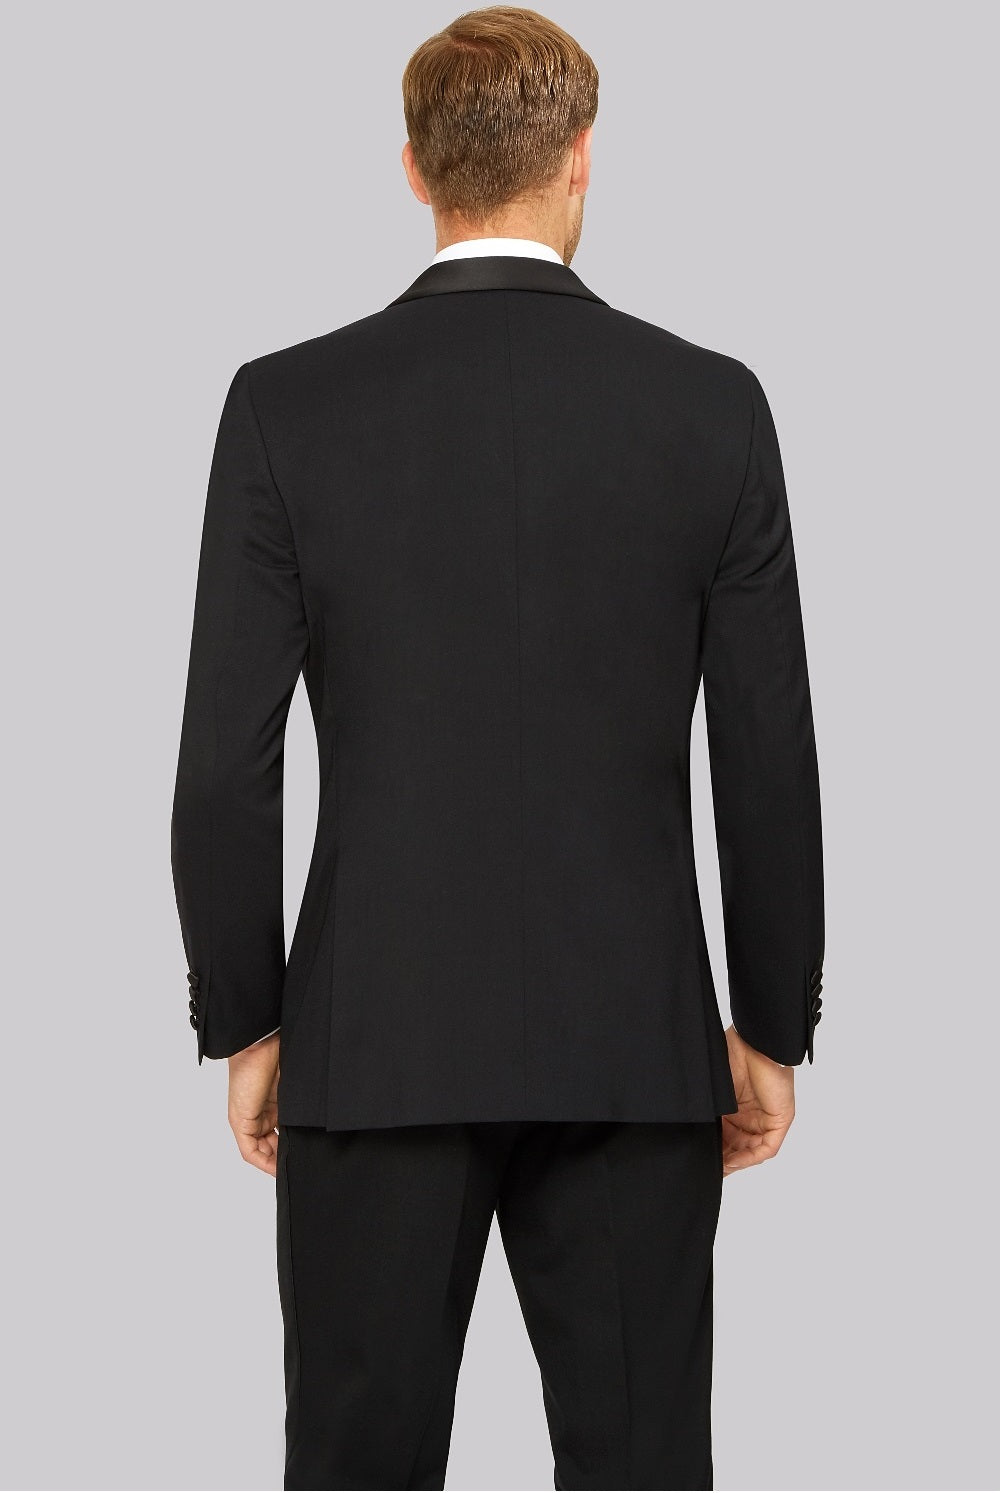 Classic Shawl Collar Suit in Black - Classique Formalwear Brisbane